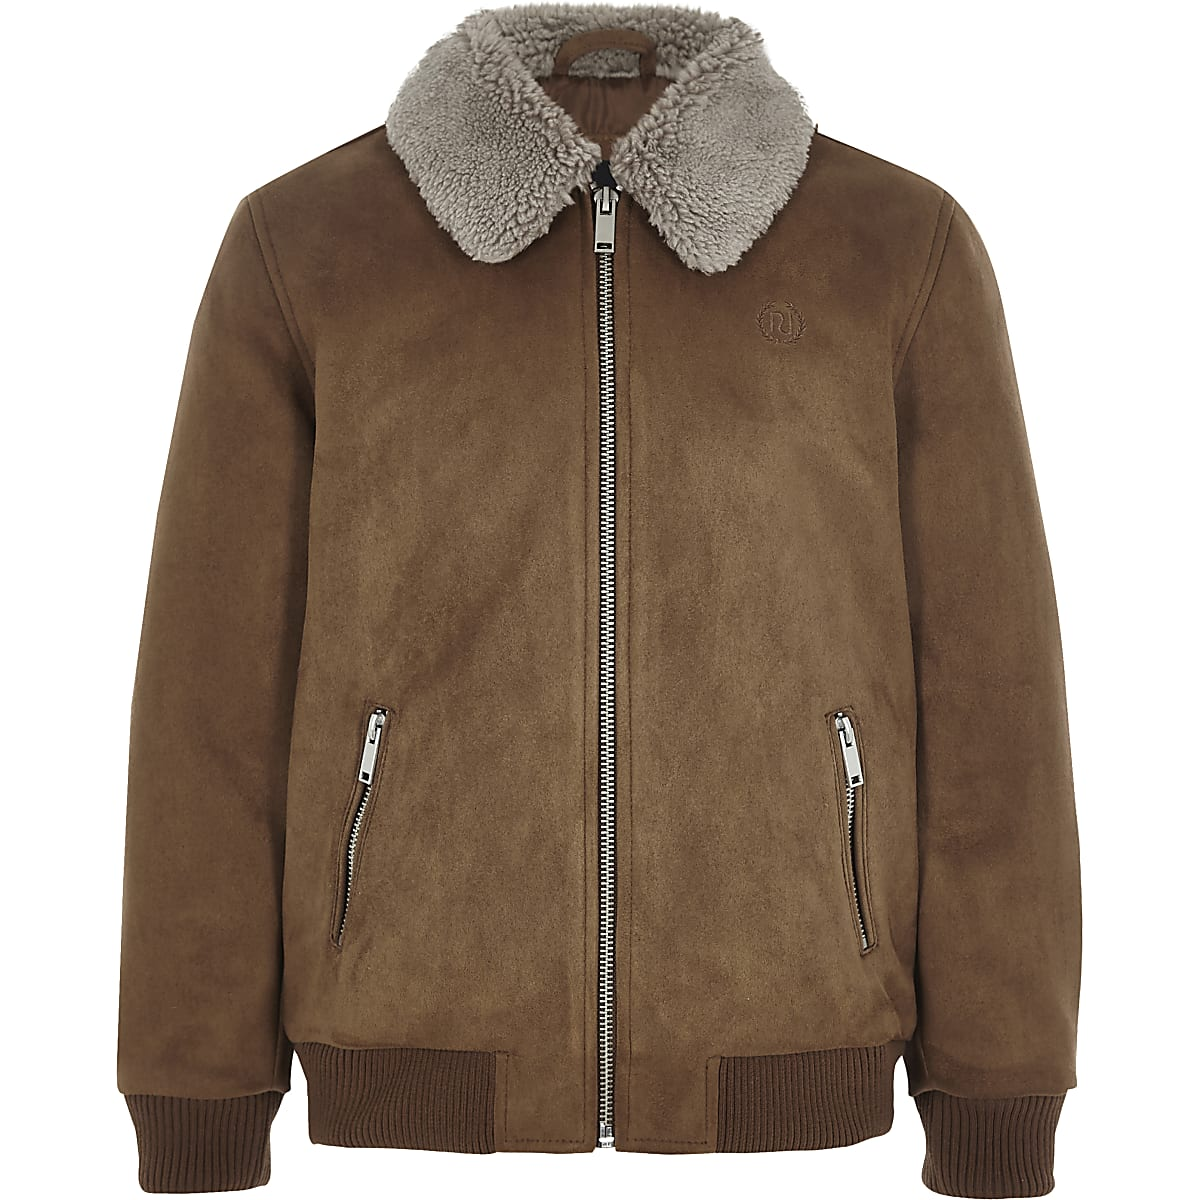 17a1cd5ab Boys brown suedette Borg collar bomber jacket - Jackets - Coats ...